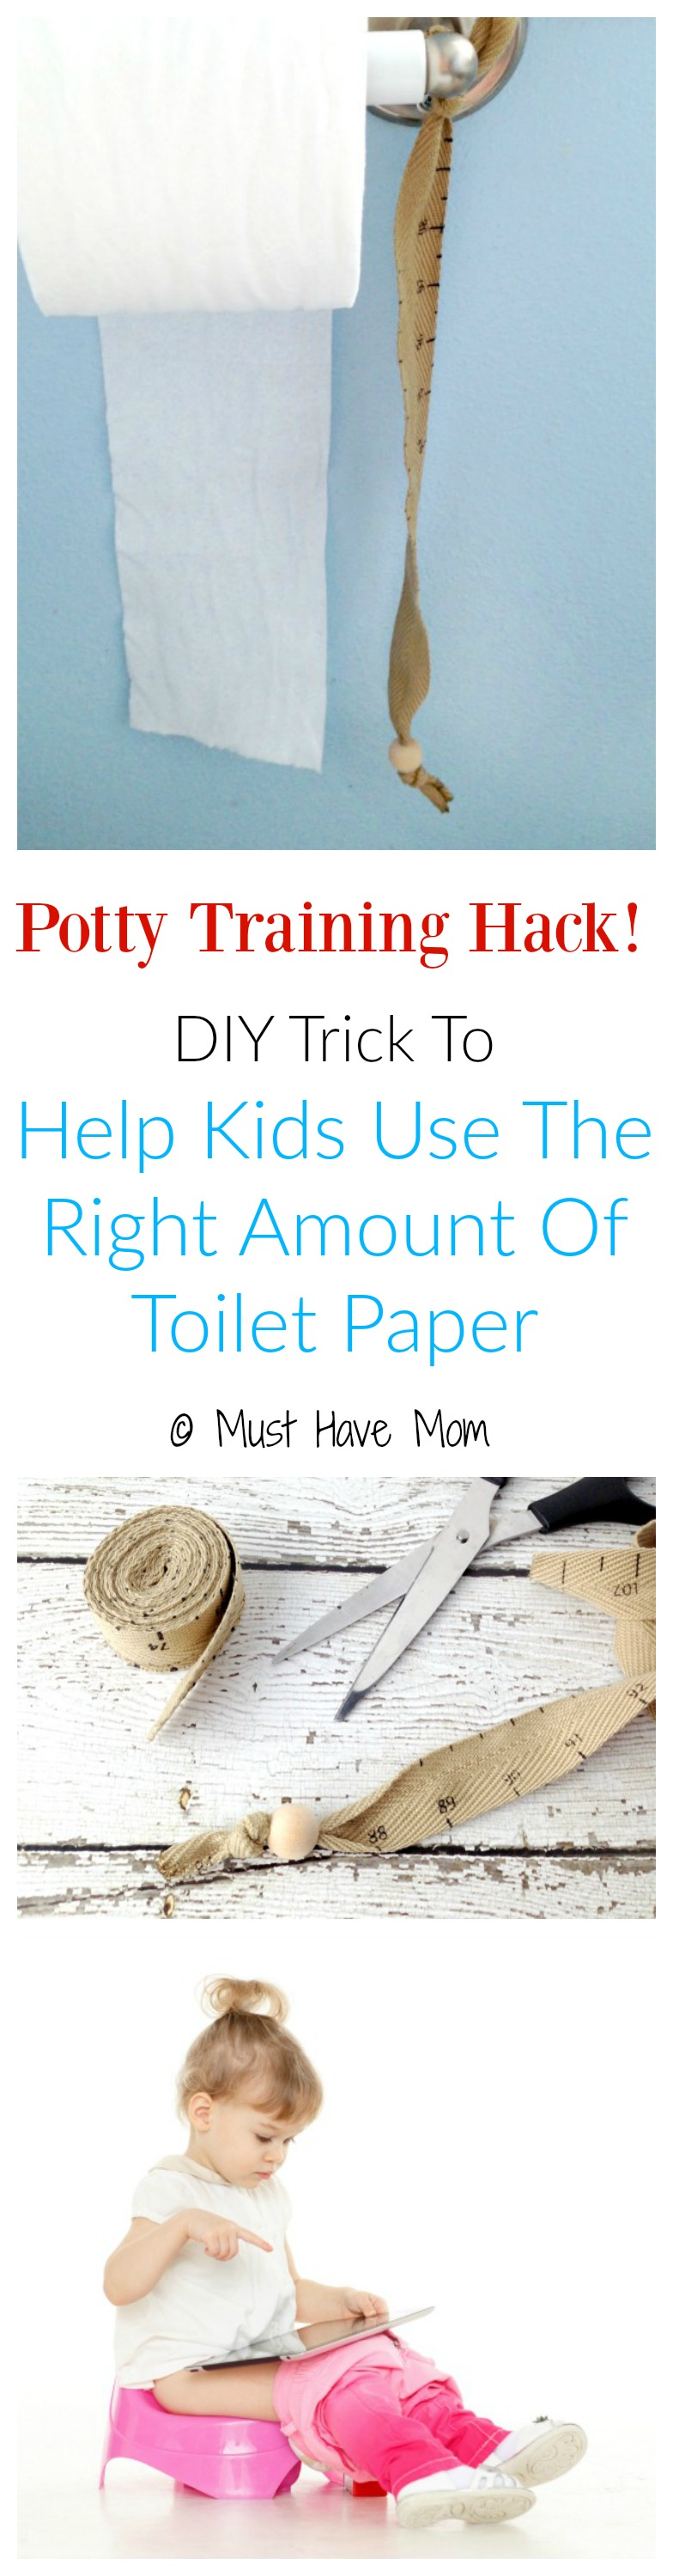 teach your kids the right amount of toilet paper to use diy trick to help kids use the right amount of toilet paper